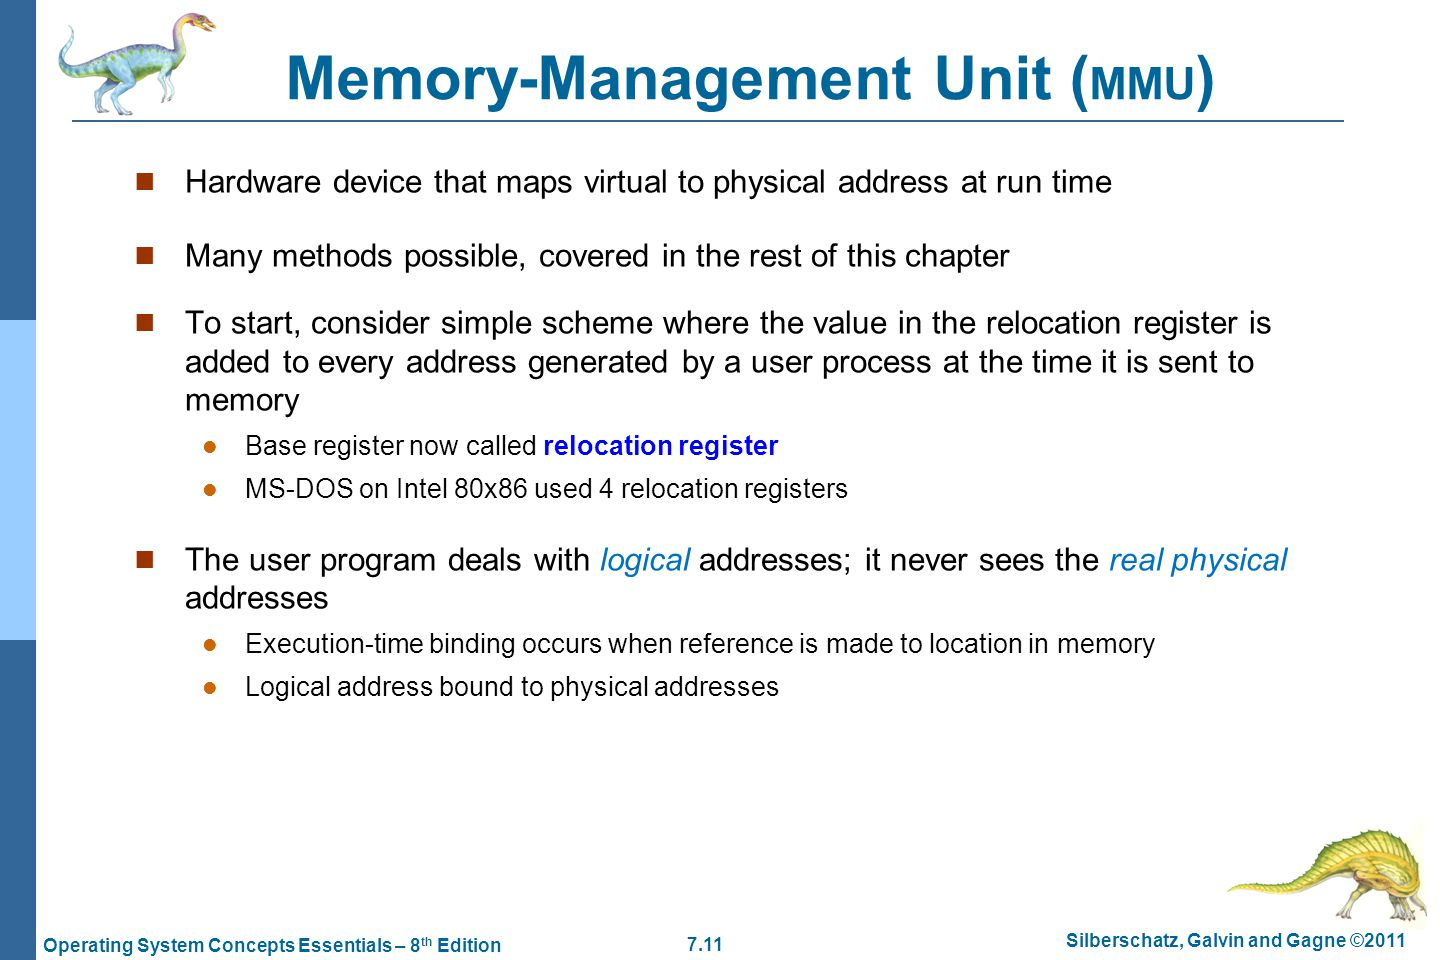 7.11 Silberschatz, Galvin and Gagne ©2011 Operating System Concepts Essentials – 8 th Edition Memory-Management Unit ( MMU ) Hardware device that maps virtual to physical address at run time Many methods possible, covered in the rest of this chapter To start, consider simple scheme where the value in the relocation register is added to every address generated by a user process at the time it is sent to memory Base register now called relocation register MS-DOS on Intel 80x86 used 4 relocation registers The user program deals with logical addresses; it never sees the real physical addresses Execution-time binding occurs when reference is made to location in memory Logical address bound to physical addresses